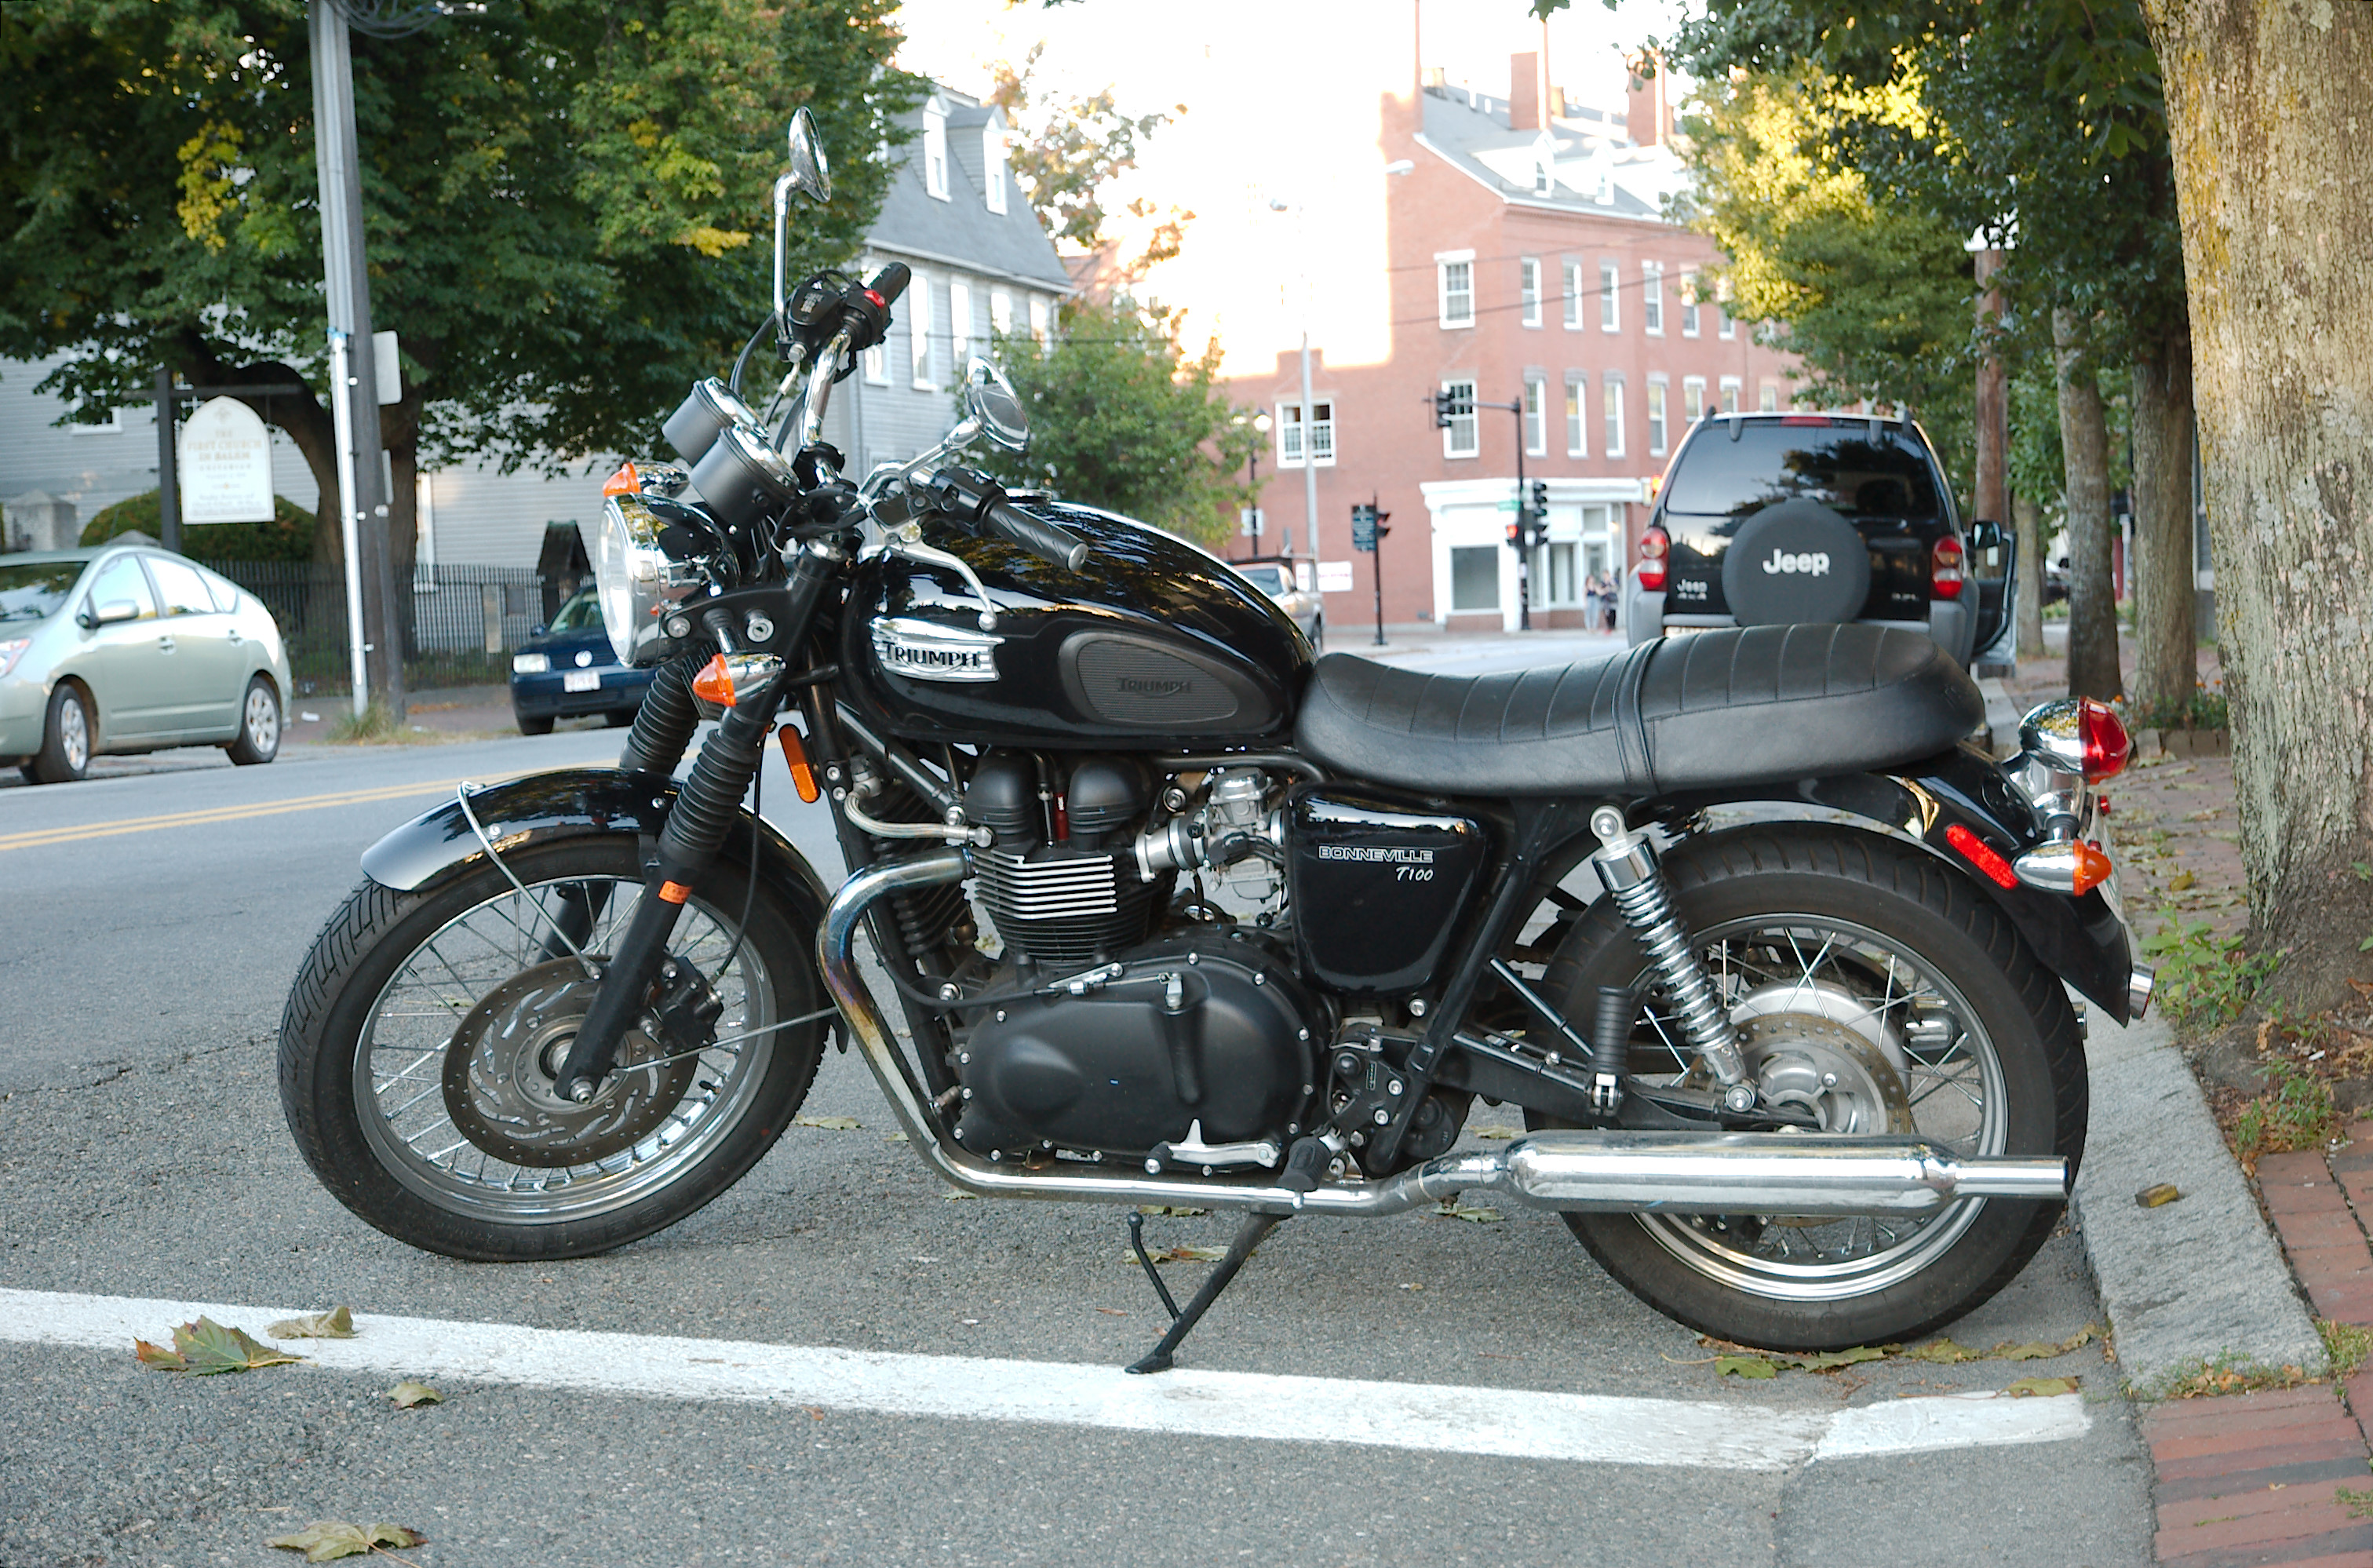 File:Triumph Bonneville T100, Left Side.jpg - Wikimedia Commons